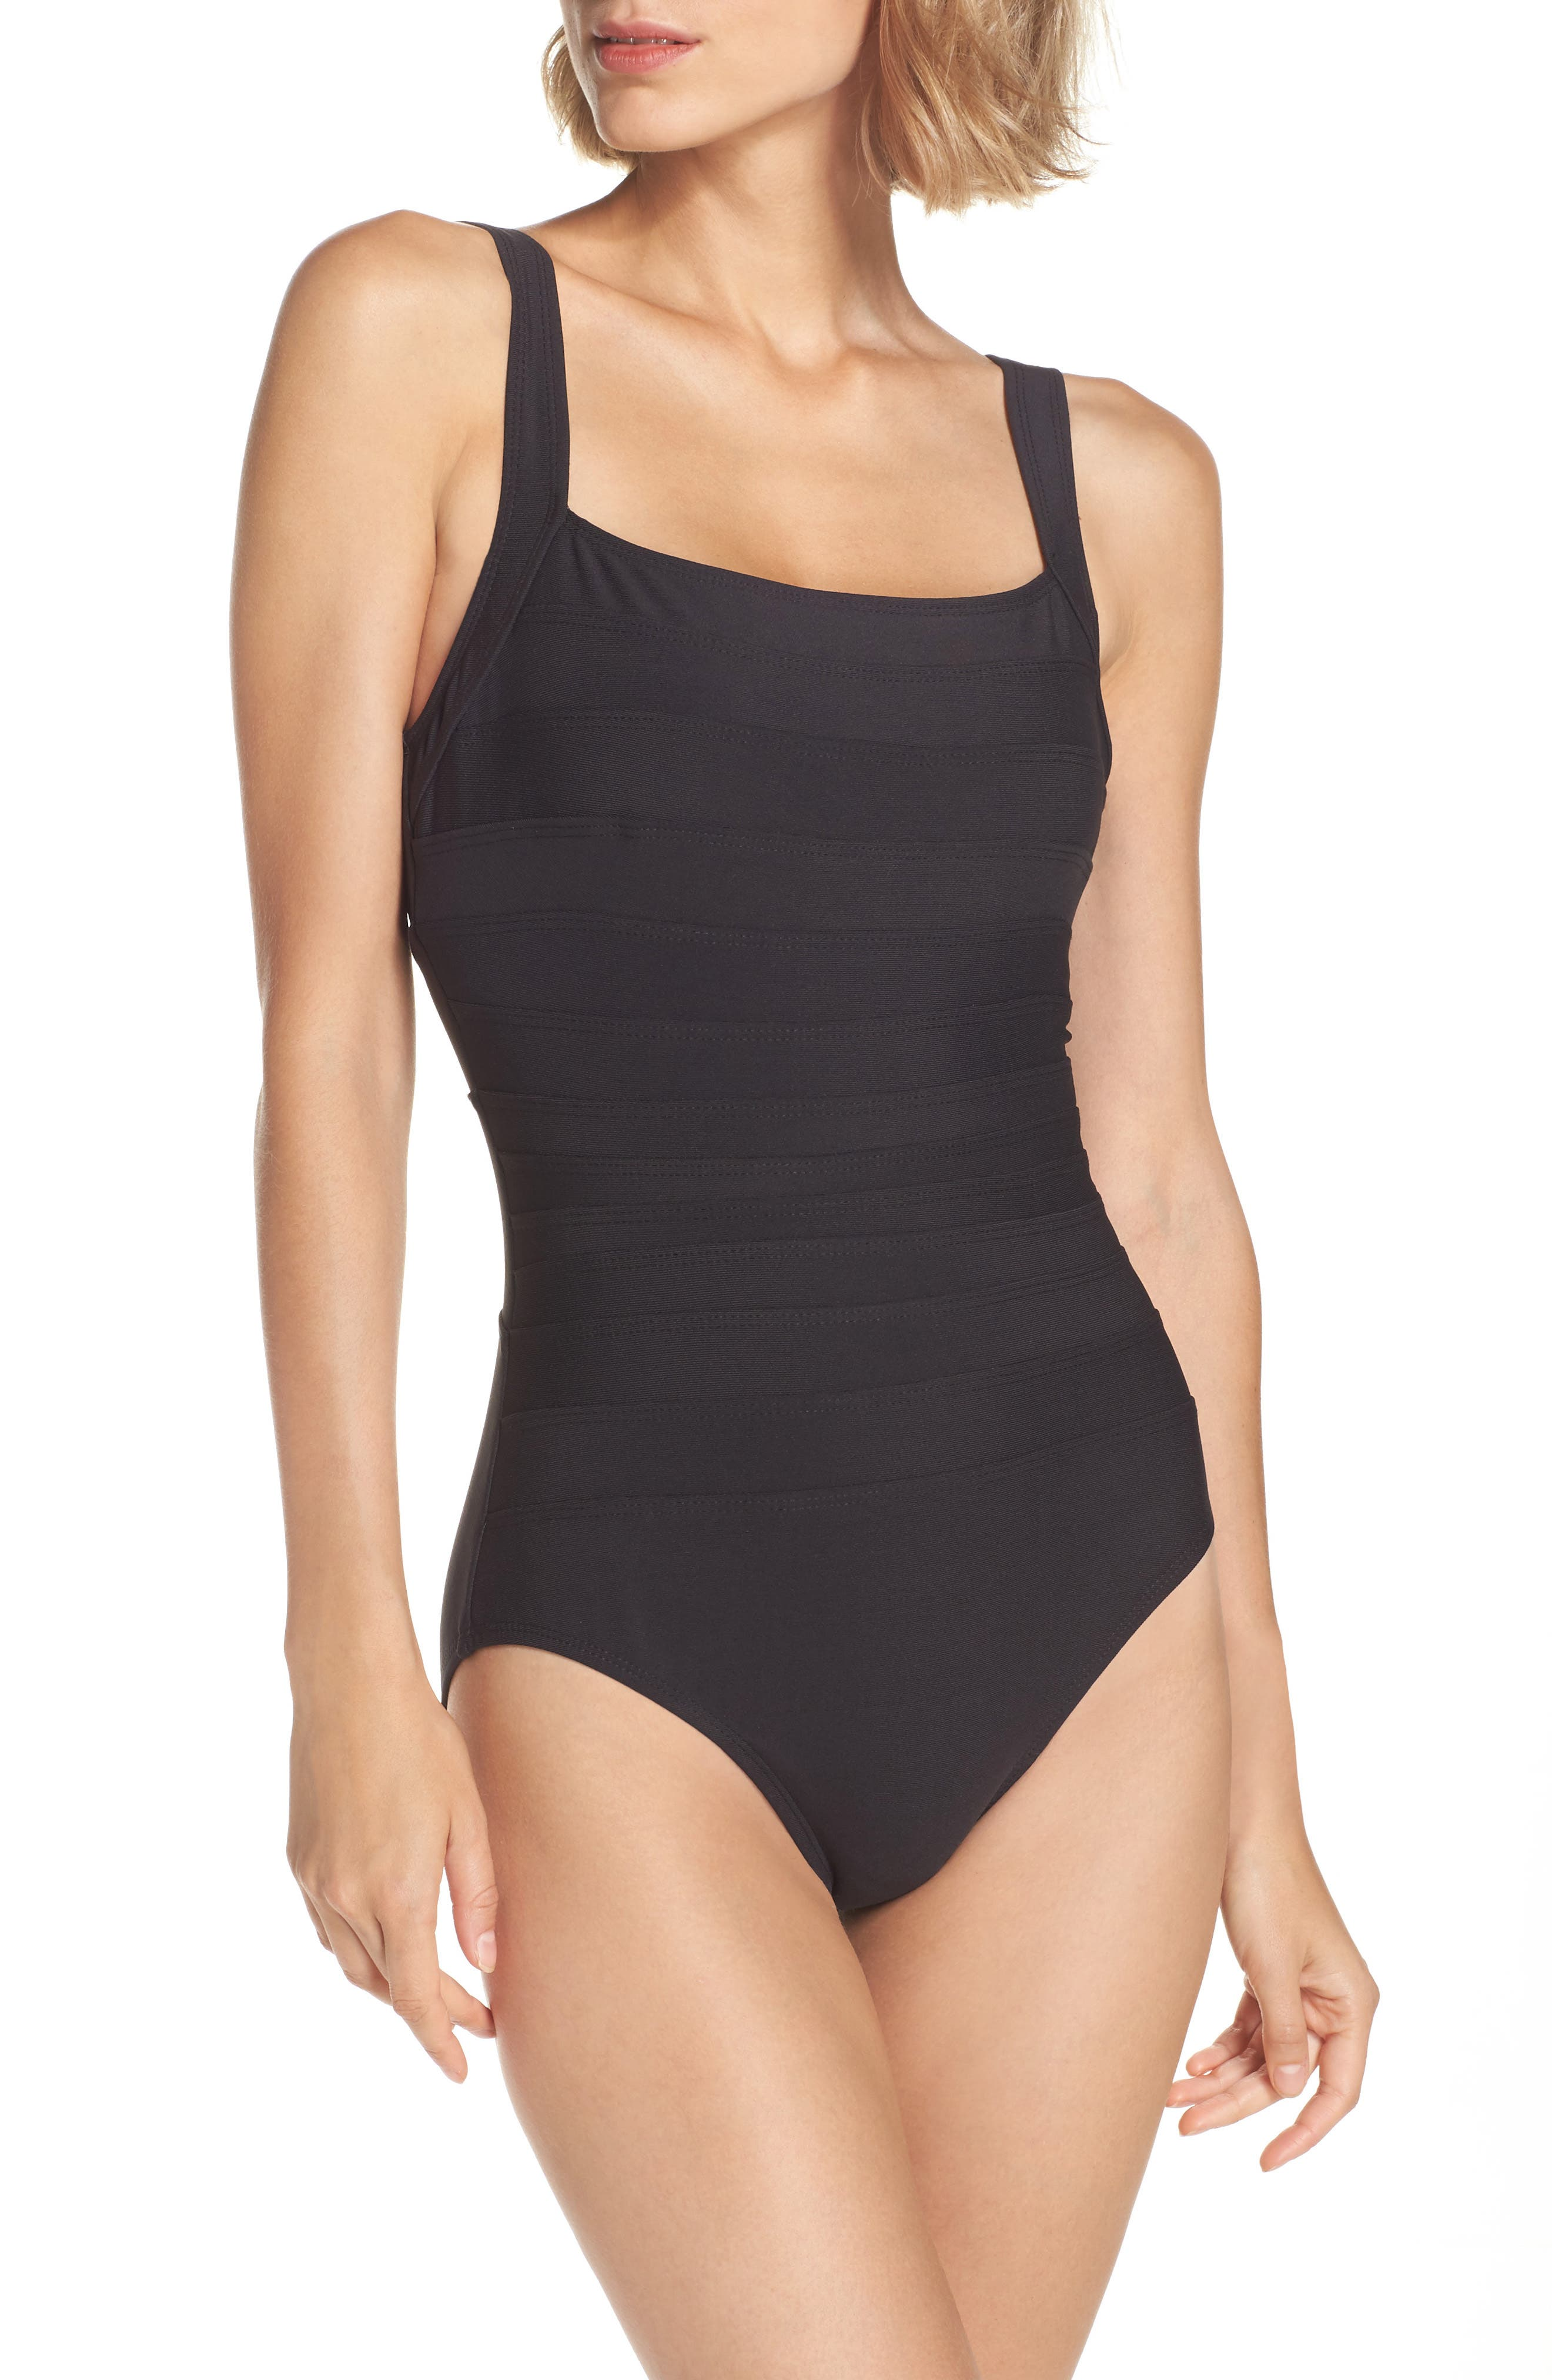 'Spectra' Banded Maillot,                         Main,                         color, Black Tones